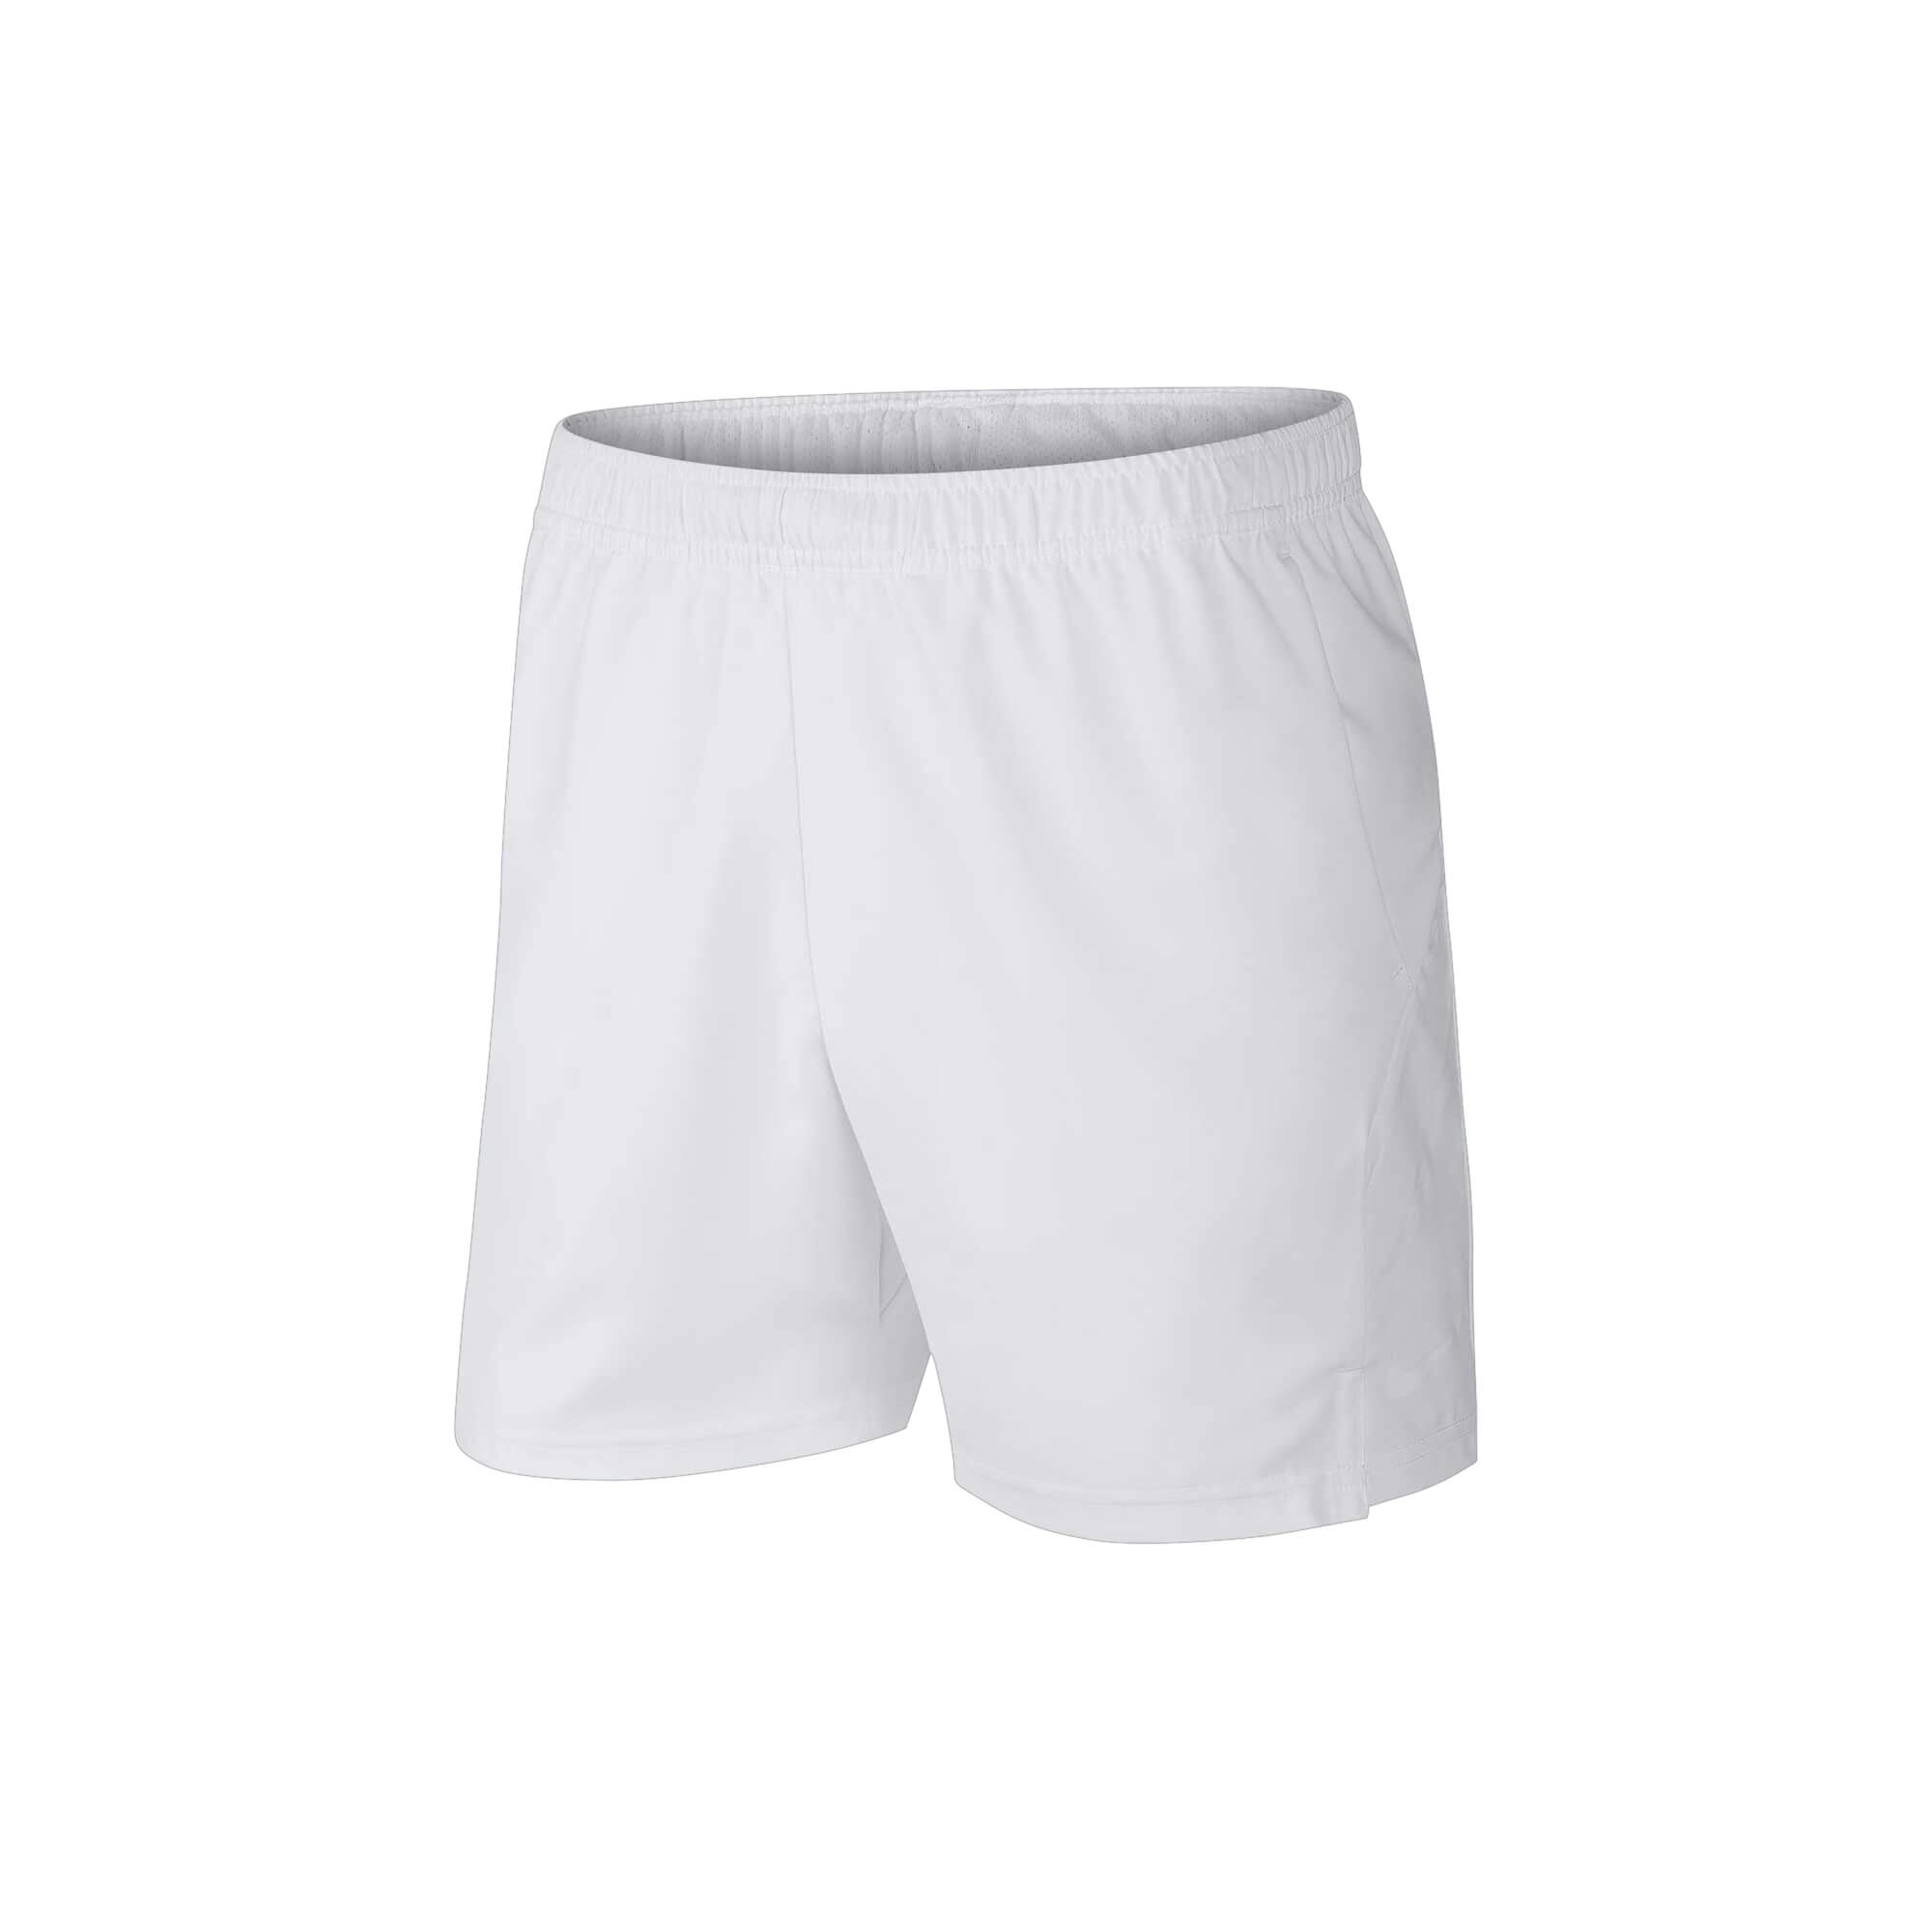 M Nk Dry Short 7IN Nike poza